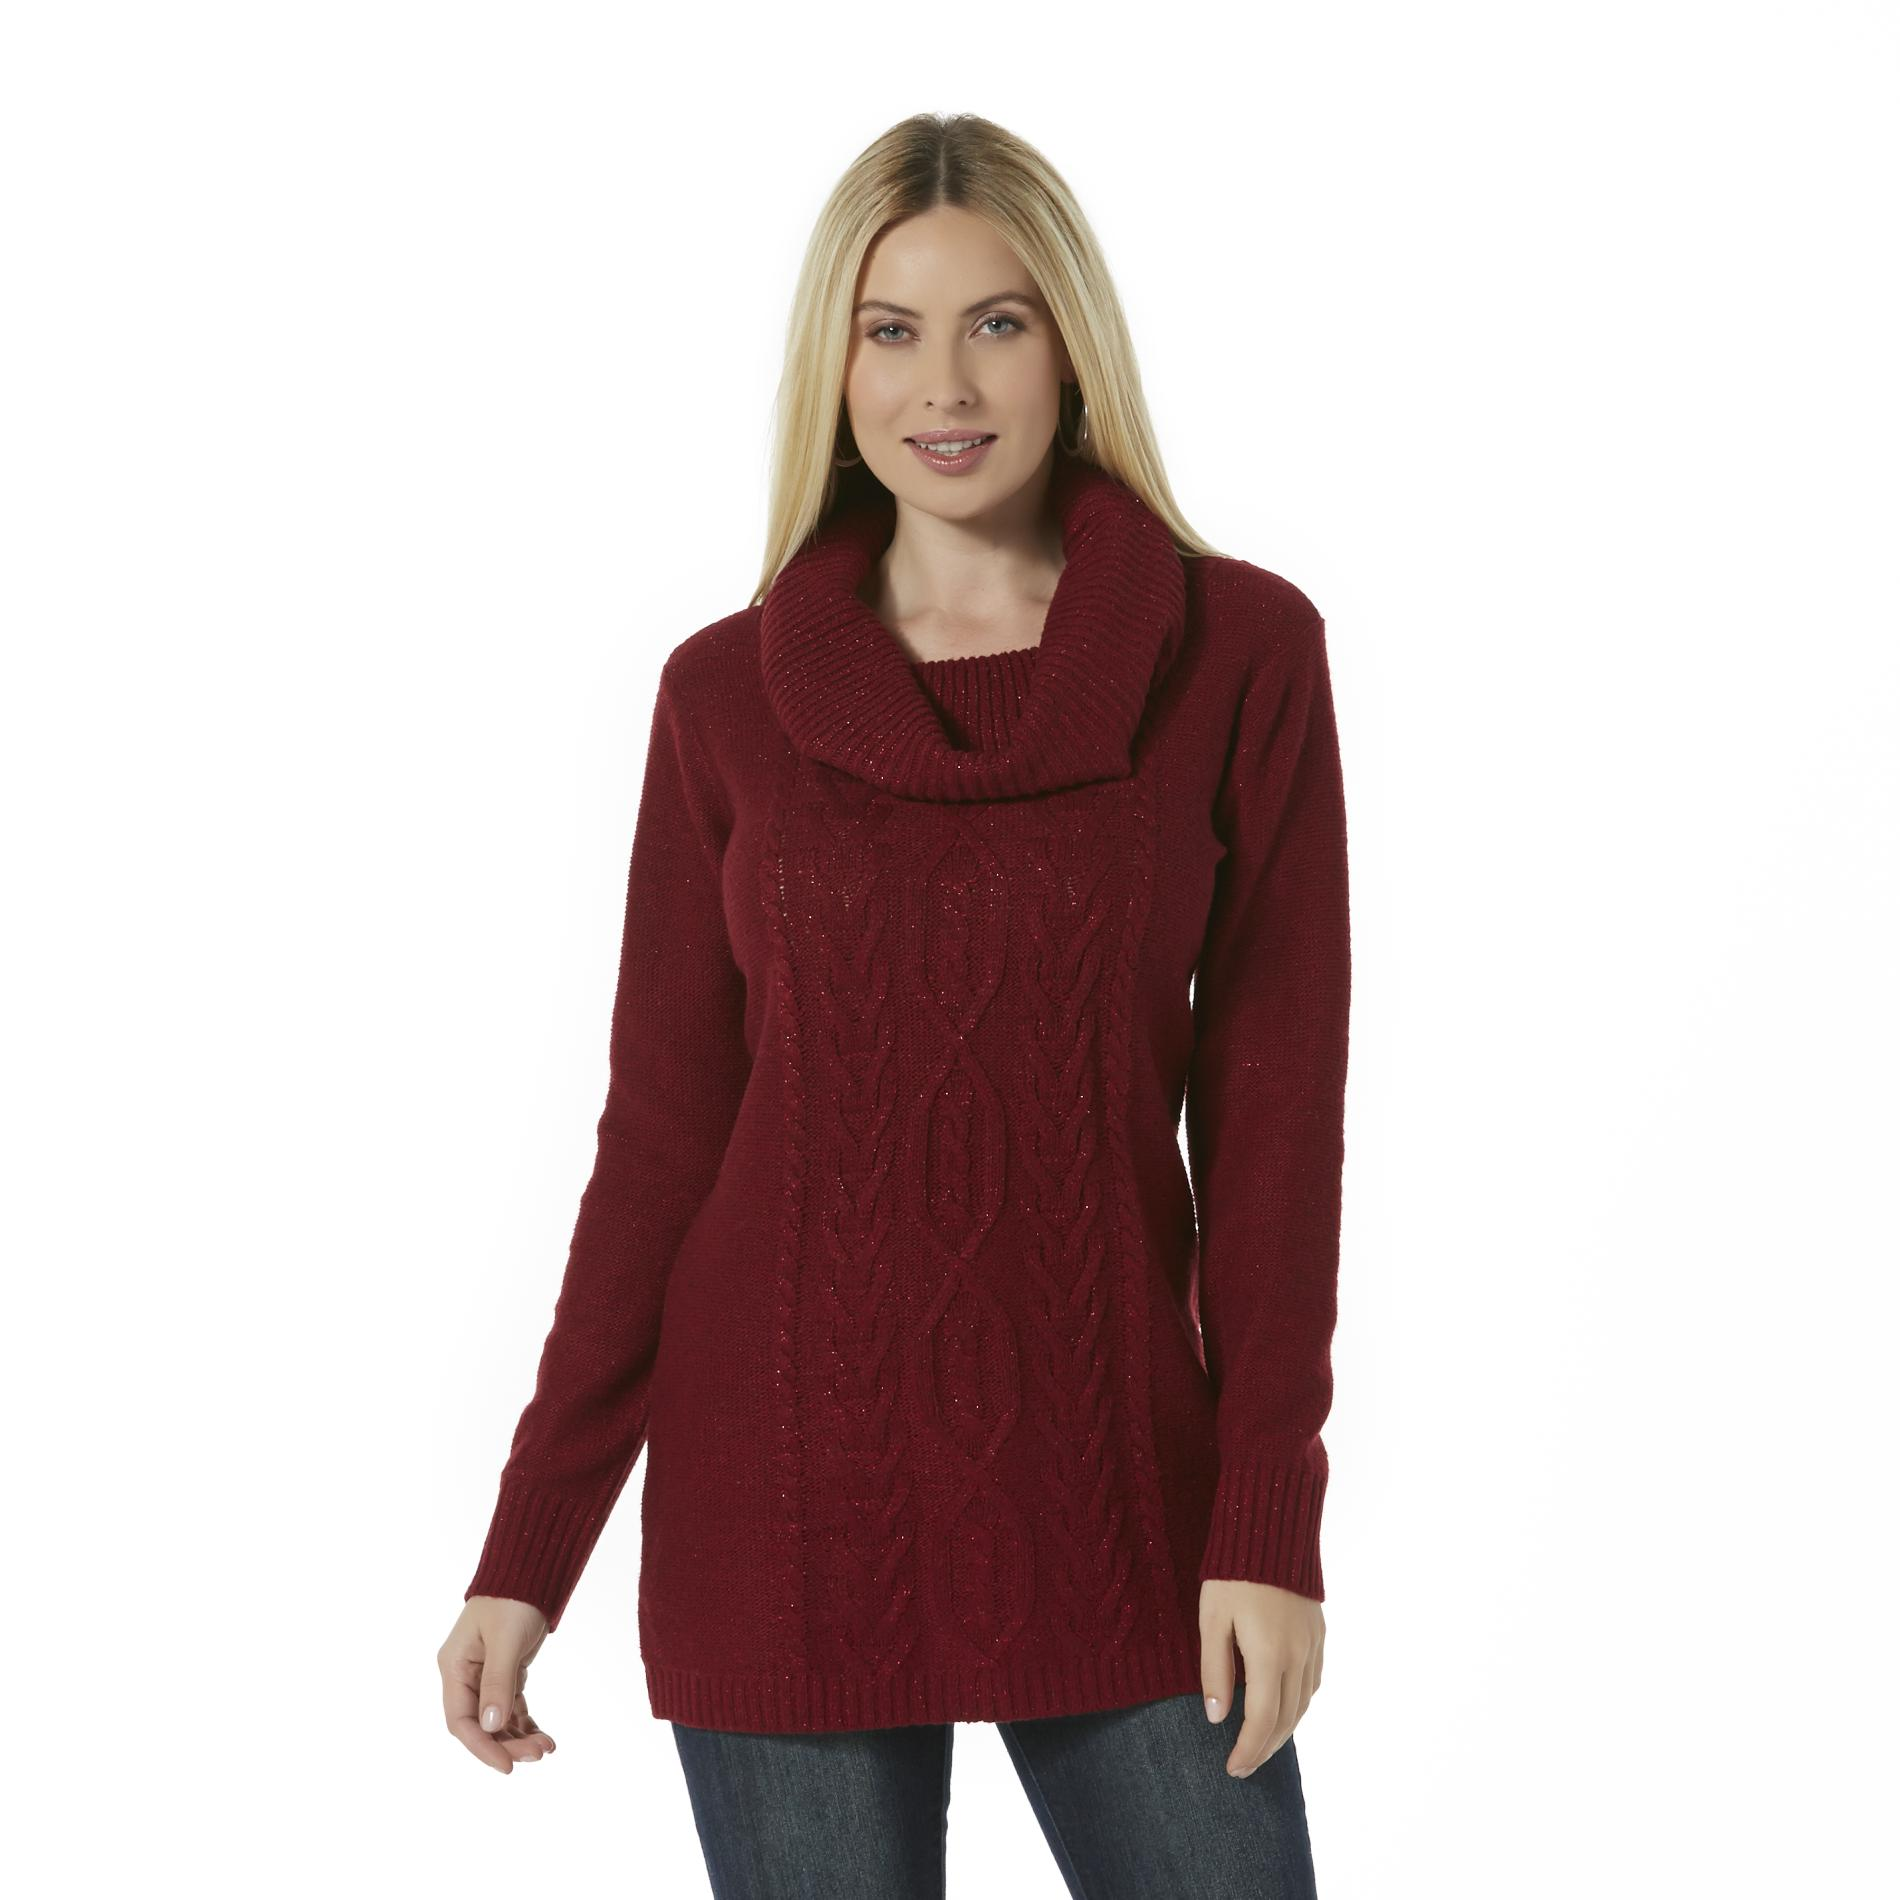 Canyon River Blues Womens Cowl Neck Sweater Tunic